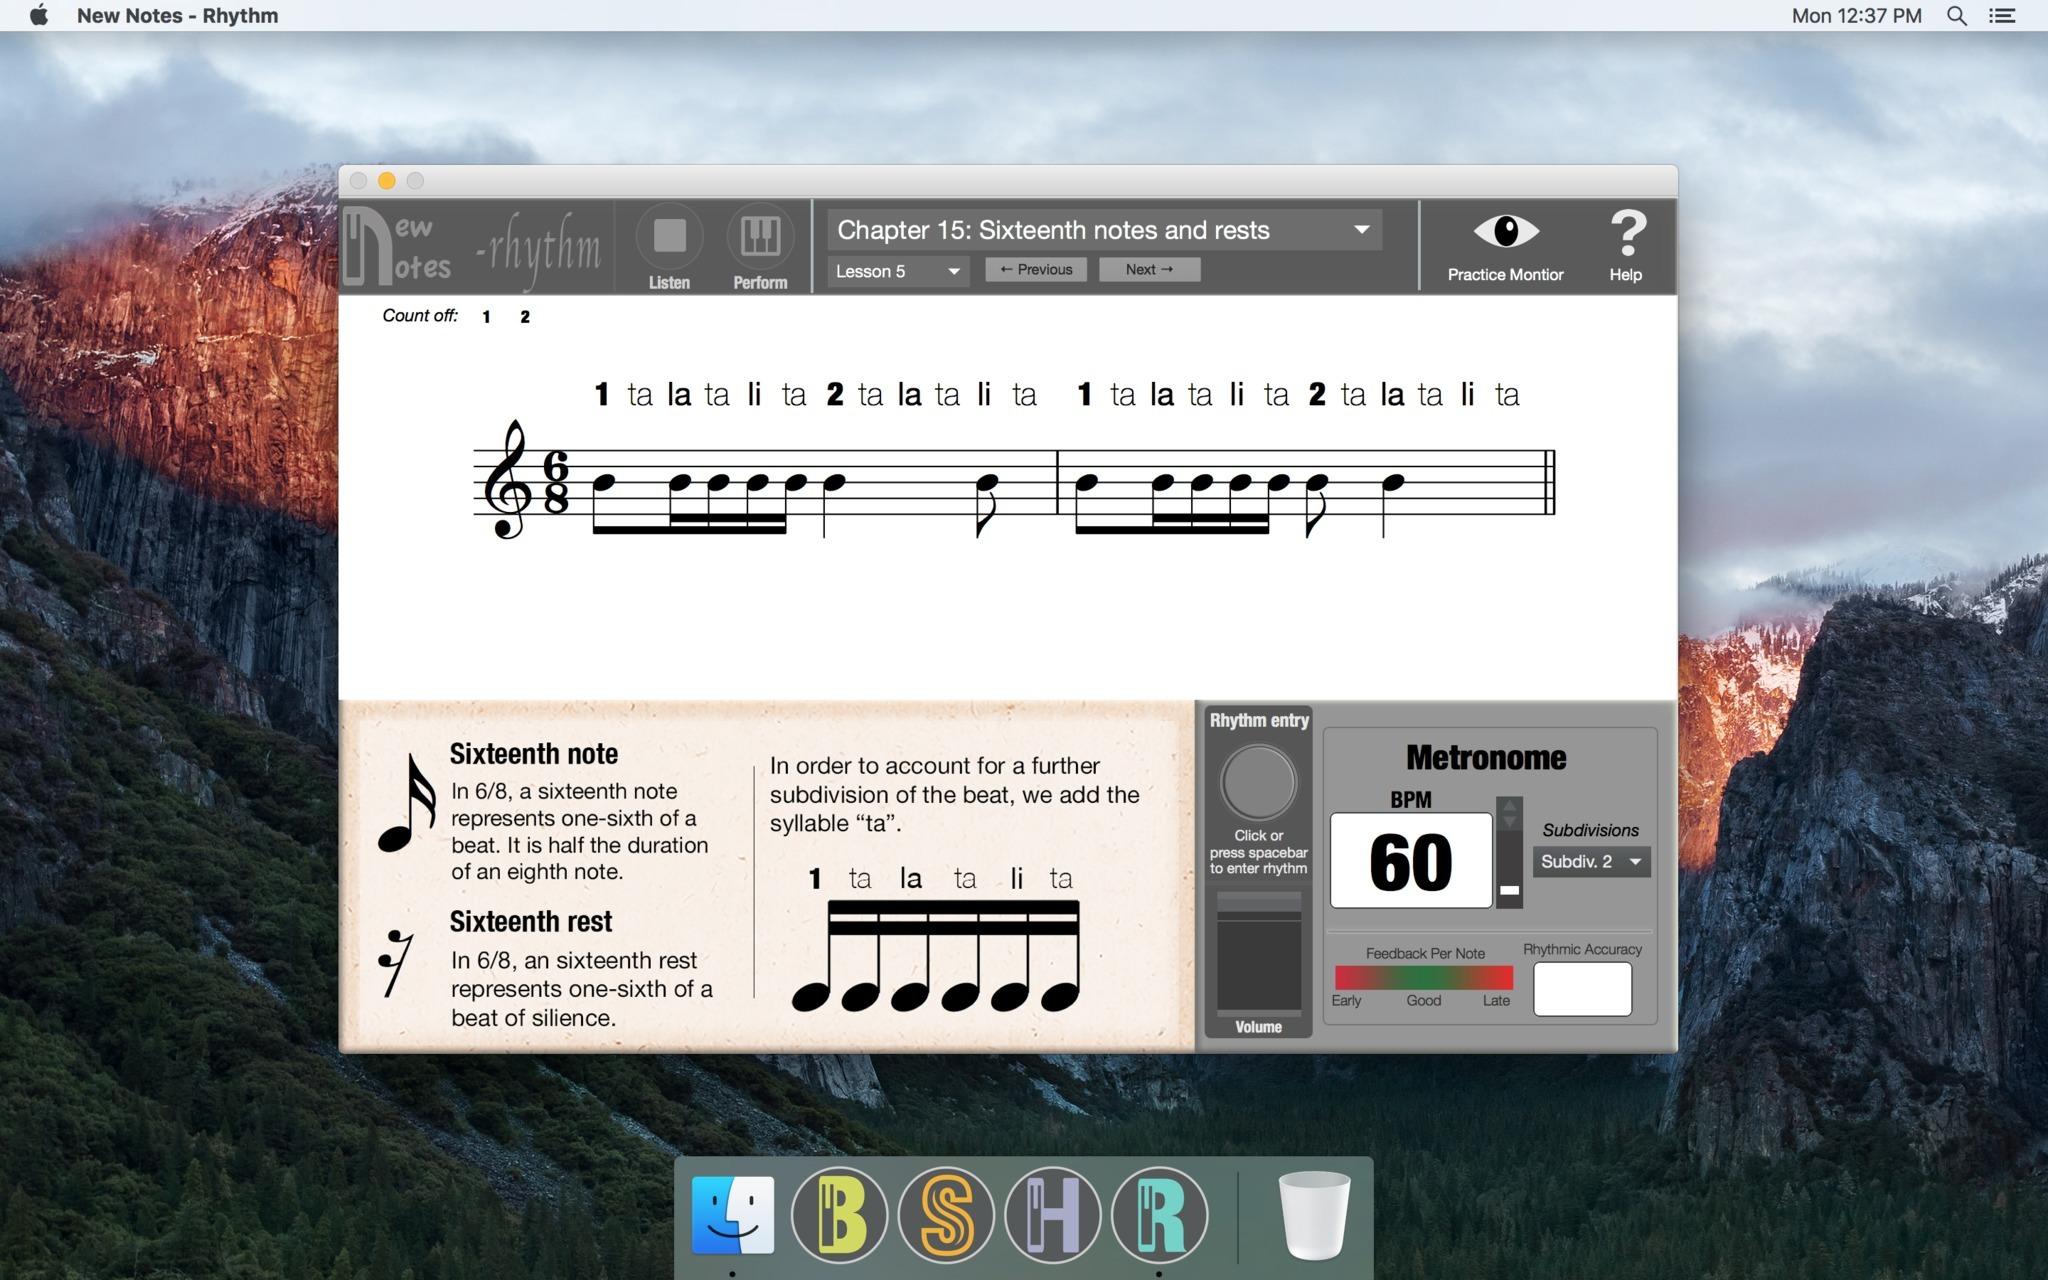 Screenshot 2 for New Notes - Rhythm